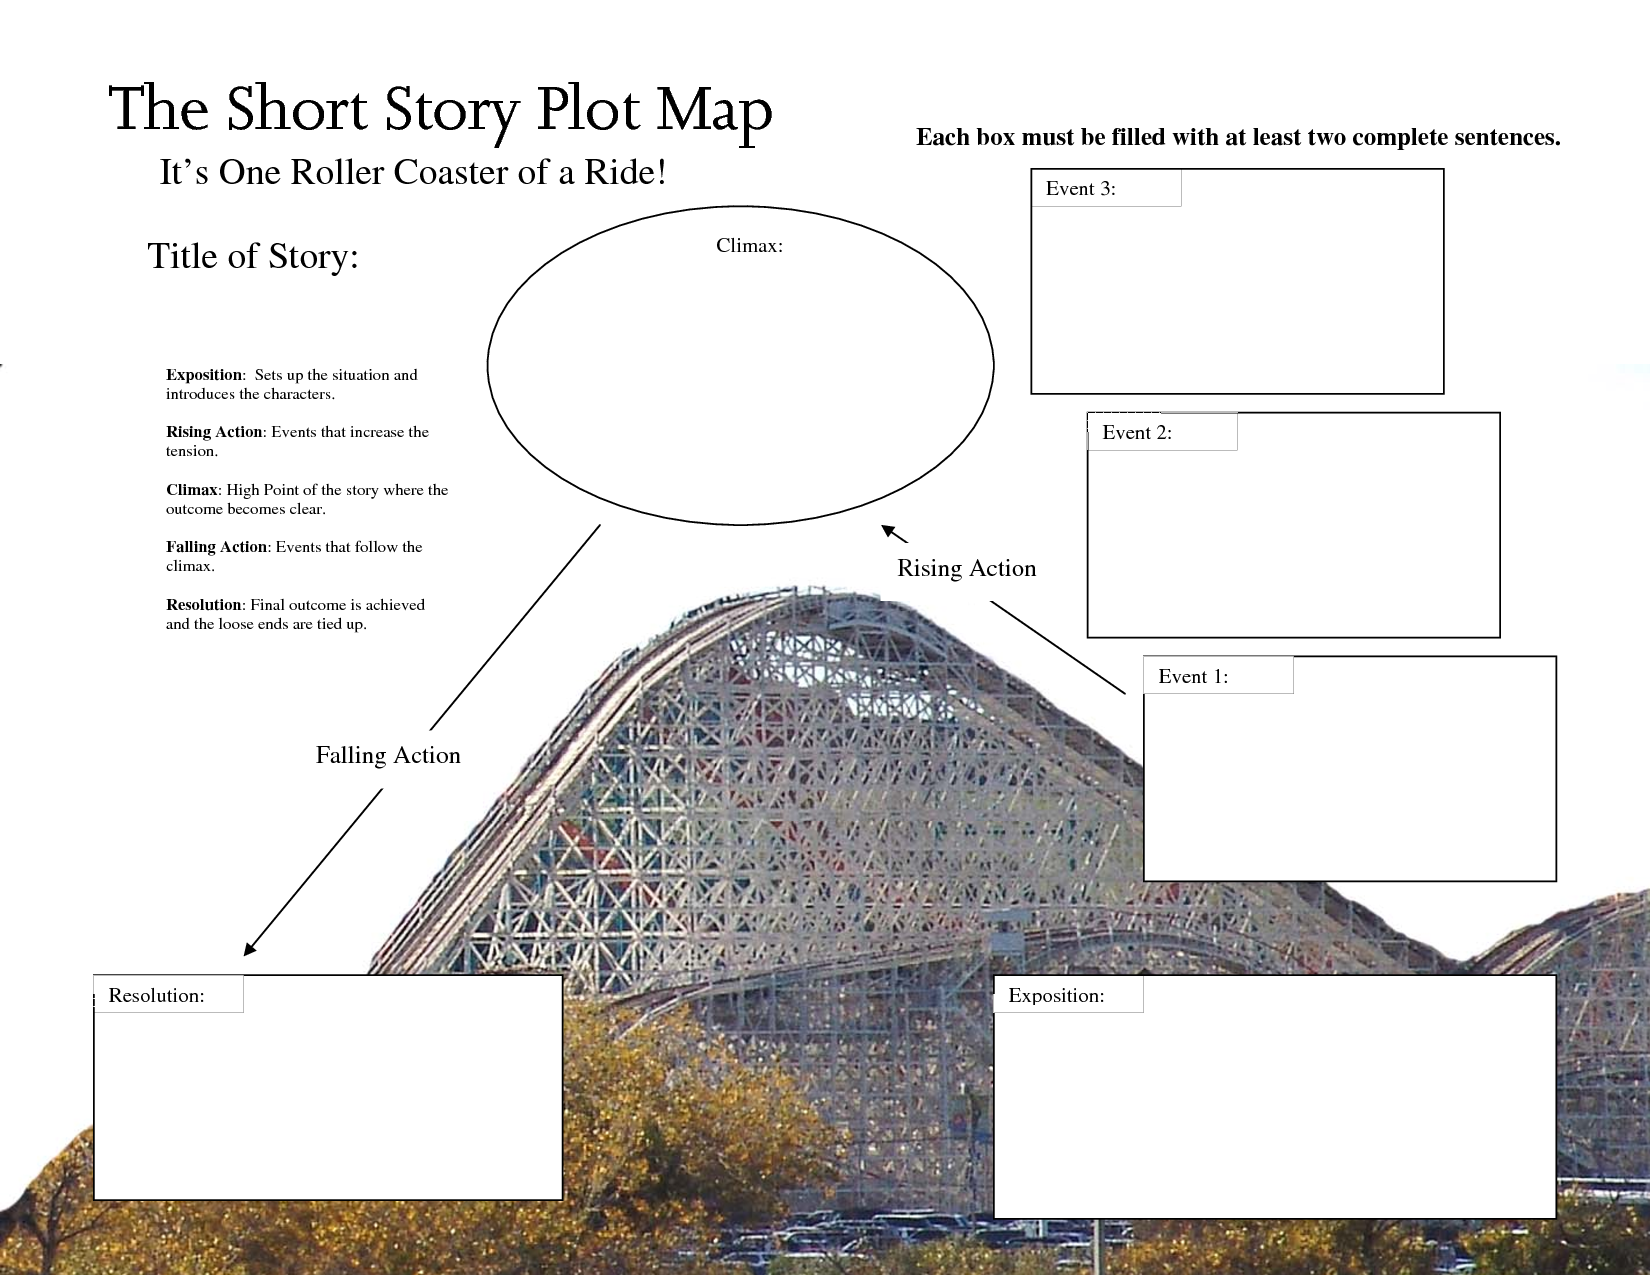 The Short Story Plot Map